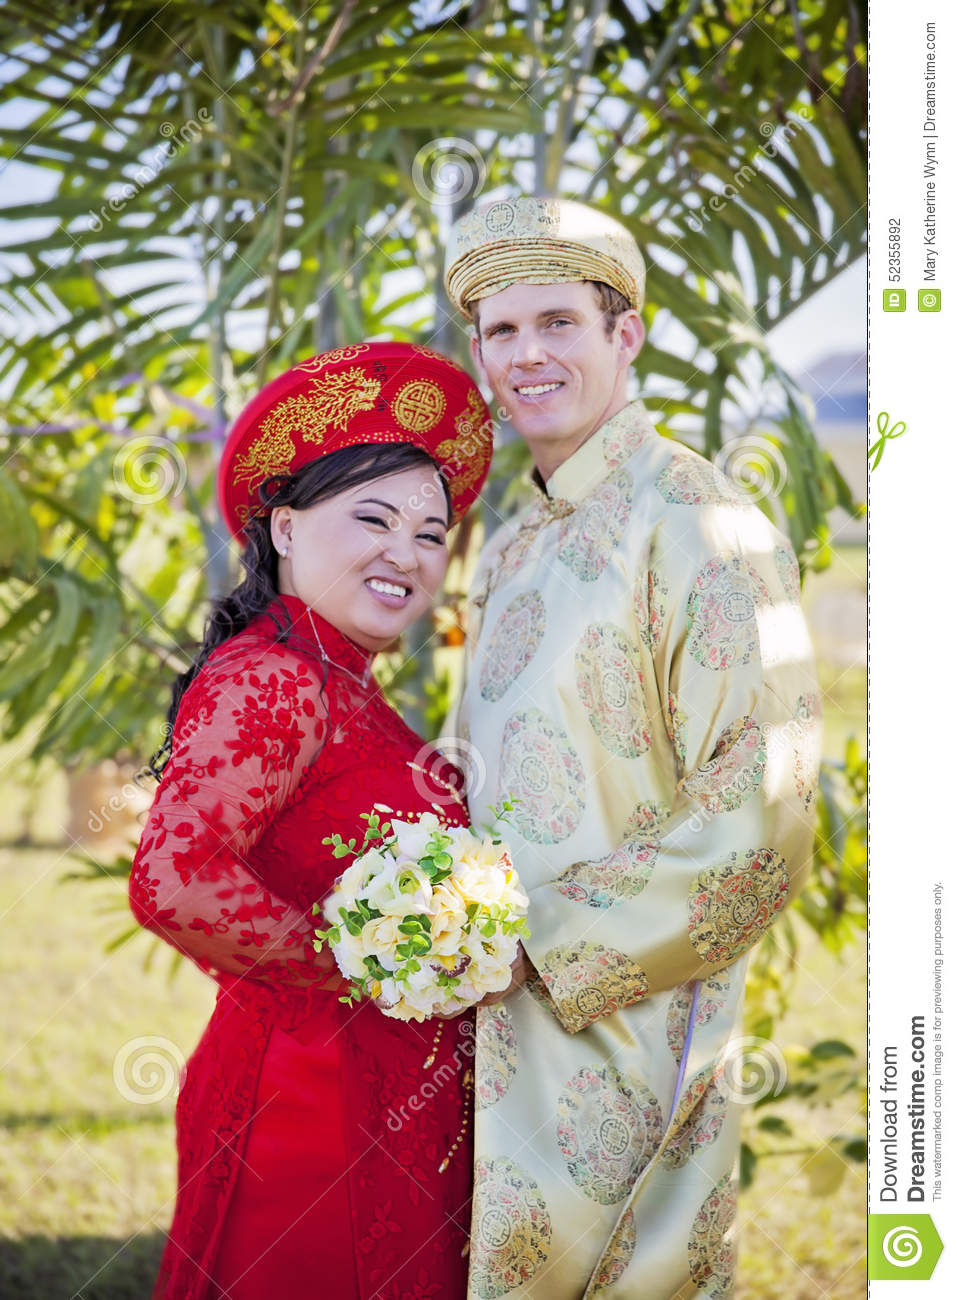 Vietnamese wedding dress images